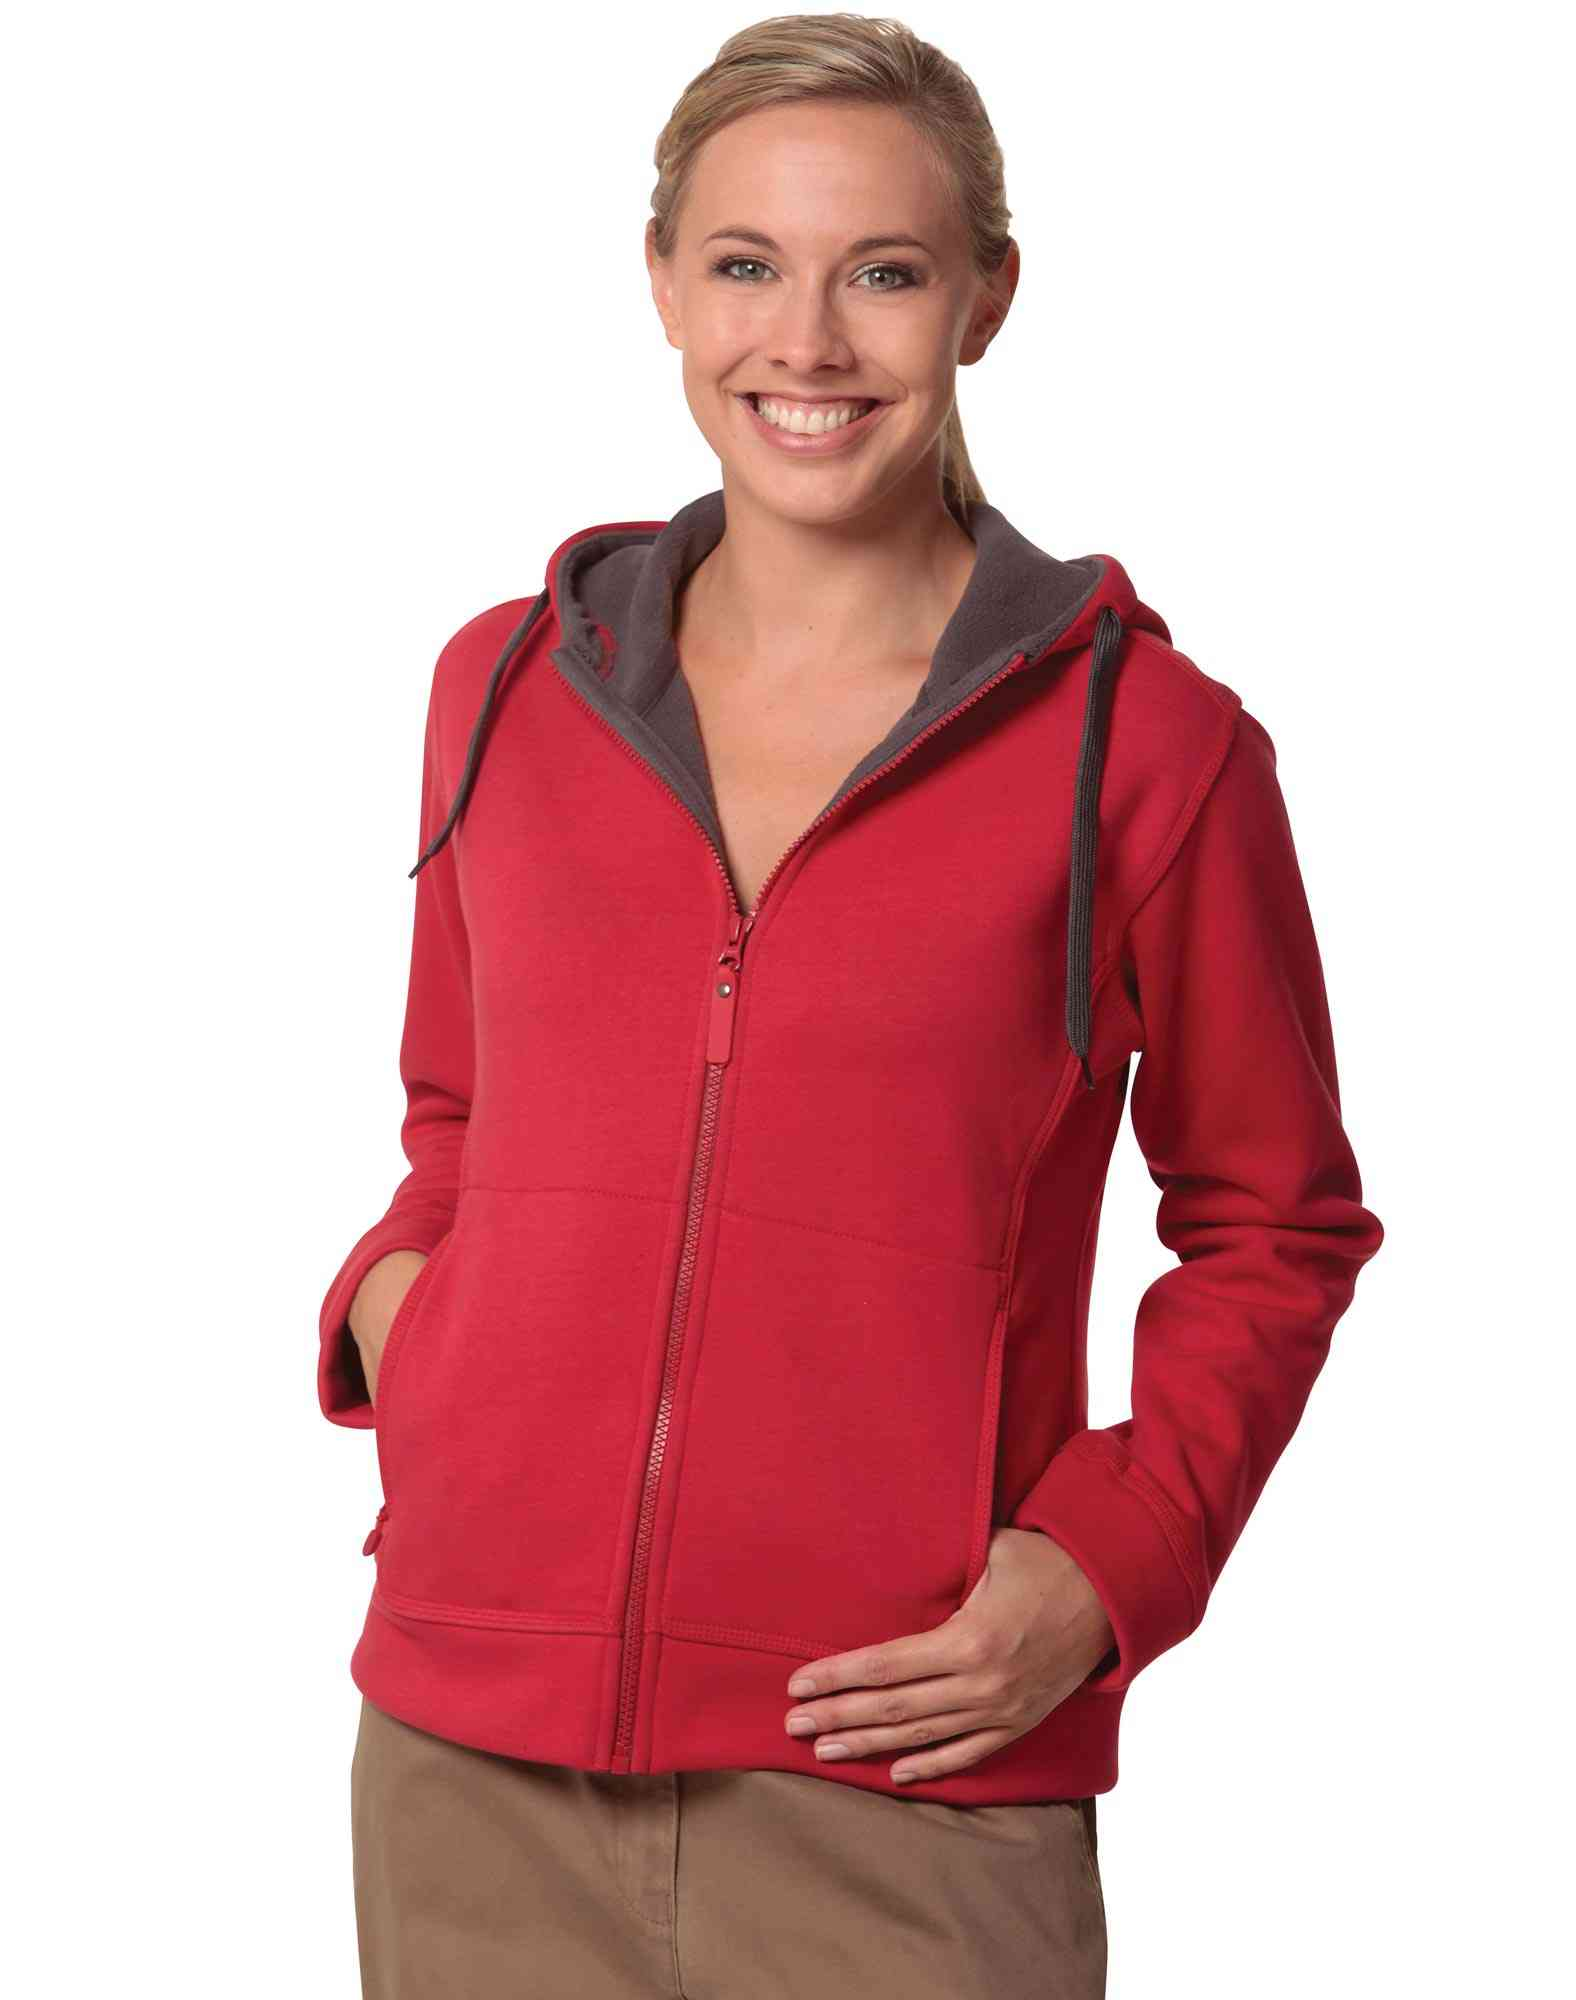 FL18 PASSION PURSUIT Hoodie Womens03 08 2015 10 26 04 - FL18 PASSION PURSUIT Hoodie Womens